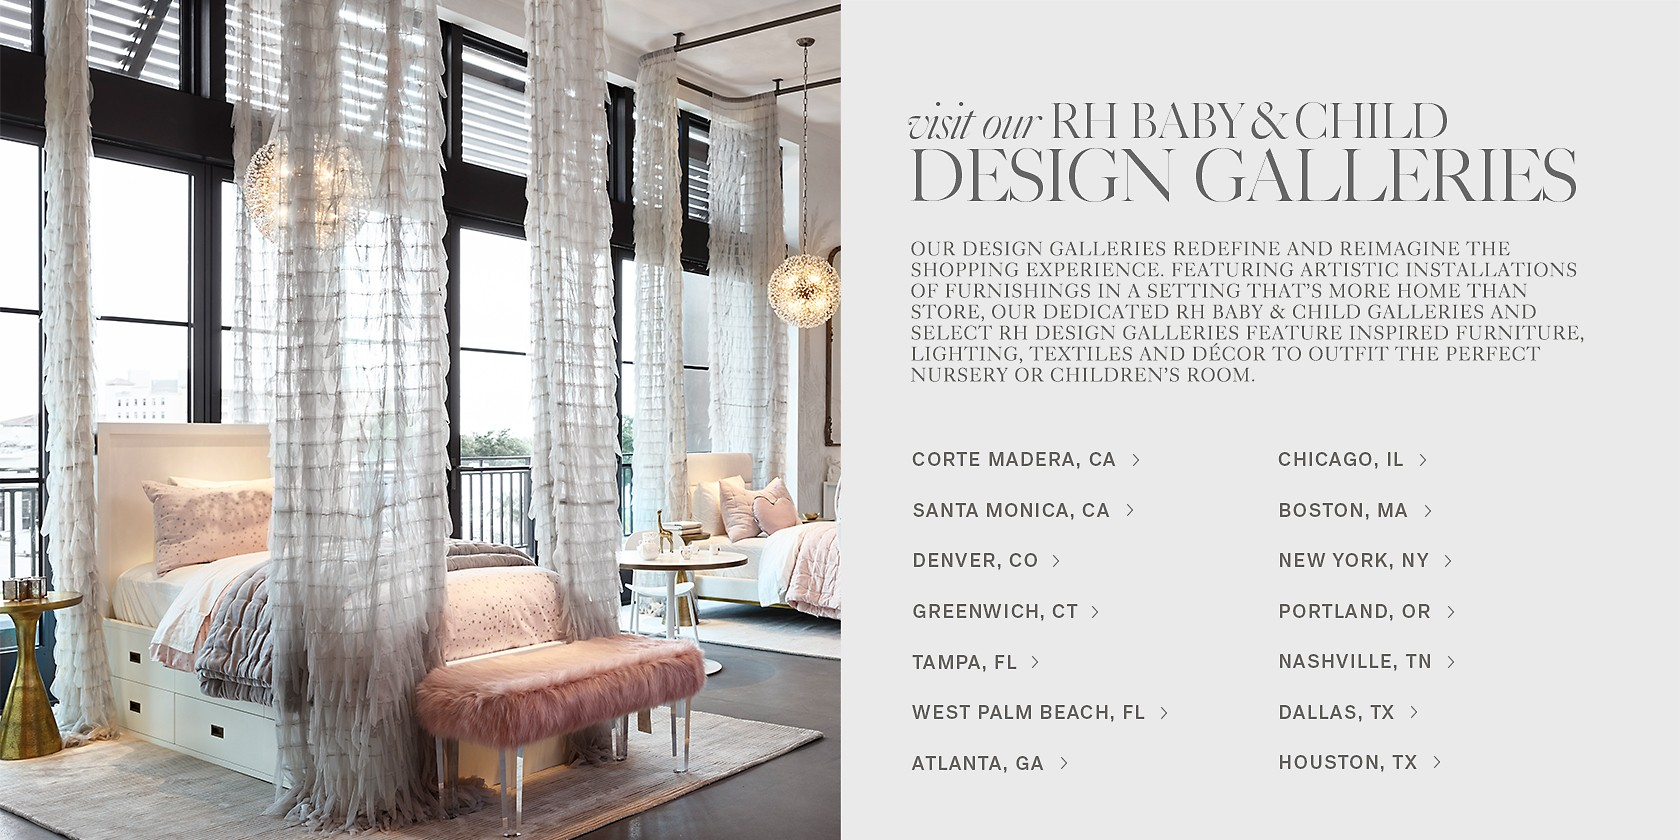 Visit An Rh Baby And Child Design Galley Today